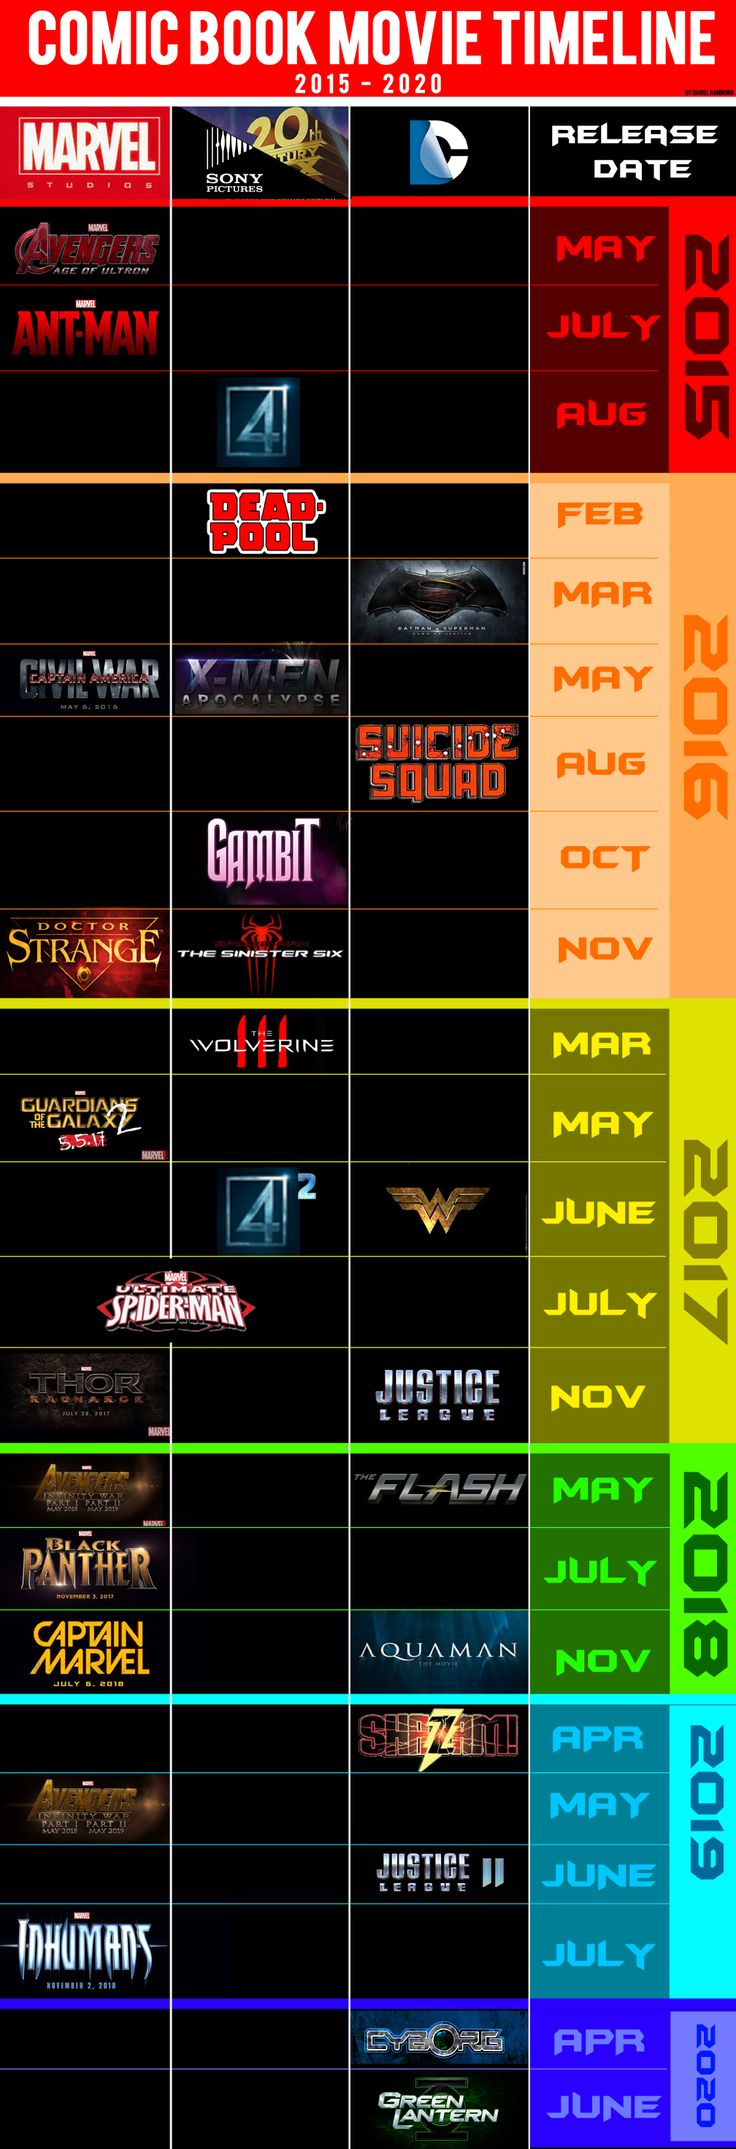 Super Hero / Comic Book Movie poster release date calendar / schedule / chart. This includes all of Marvel DC Sony and Fox Super hero movies which include spiderman, captain america, xmen , avengers, age of ultron from now till 2020.